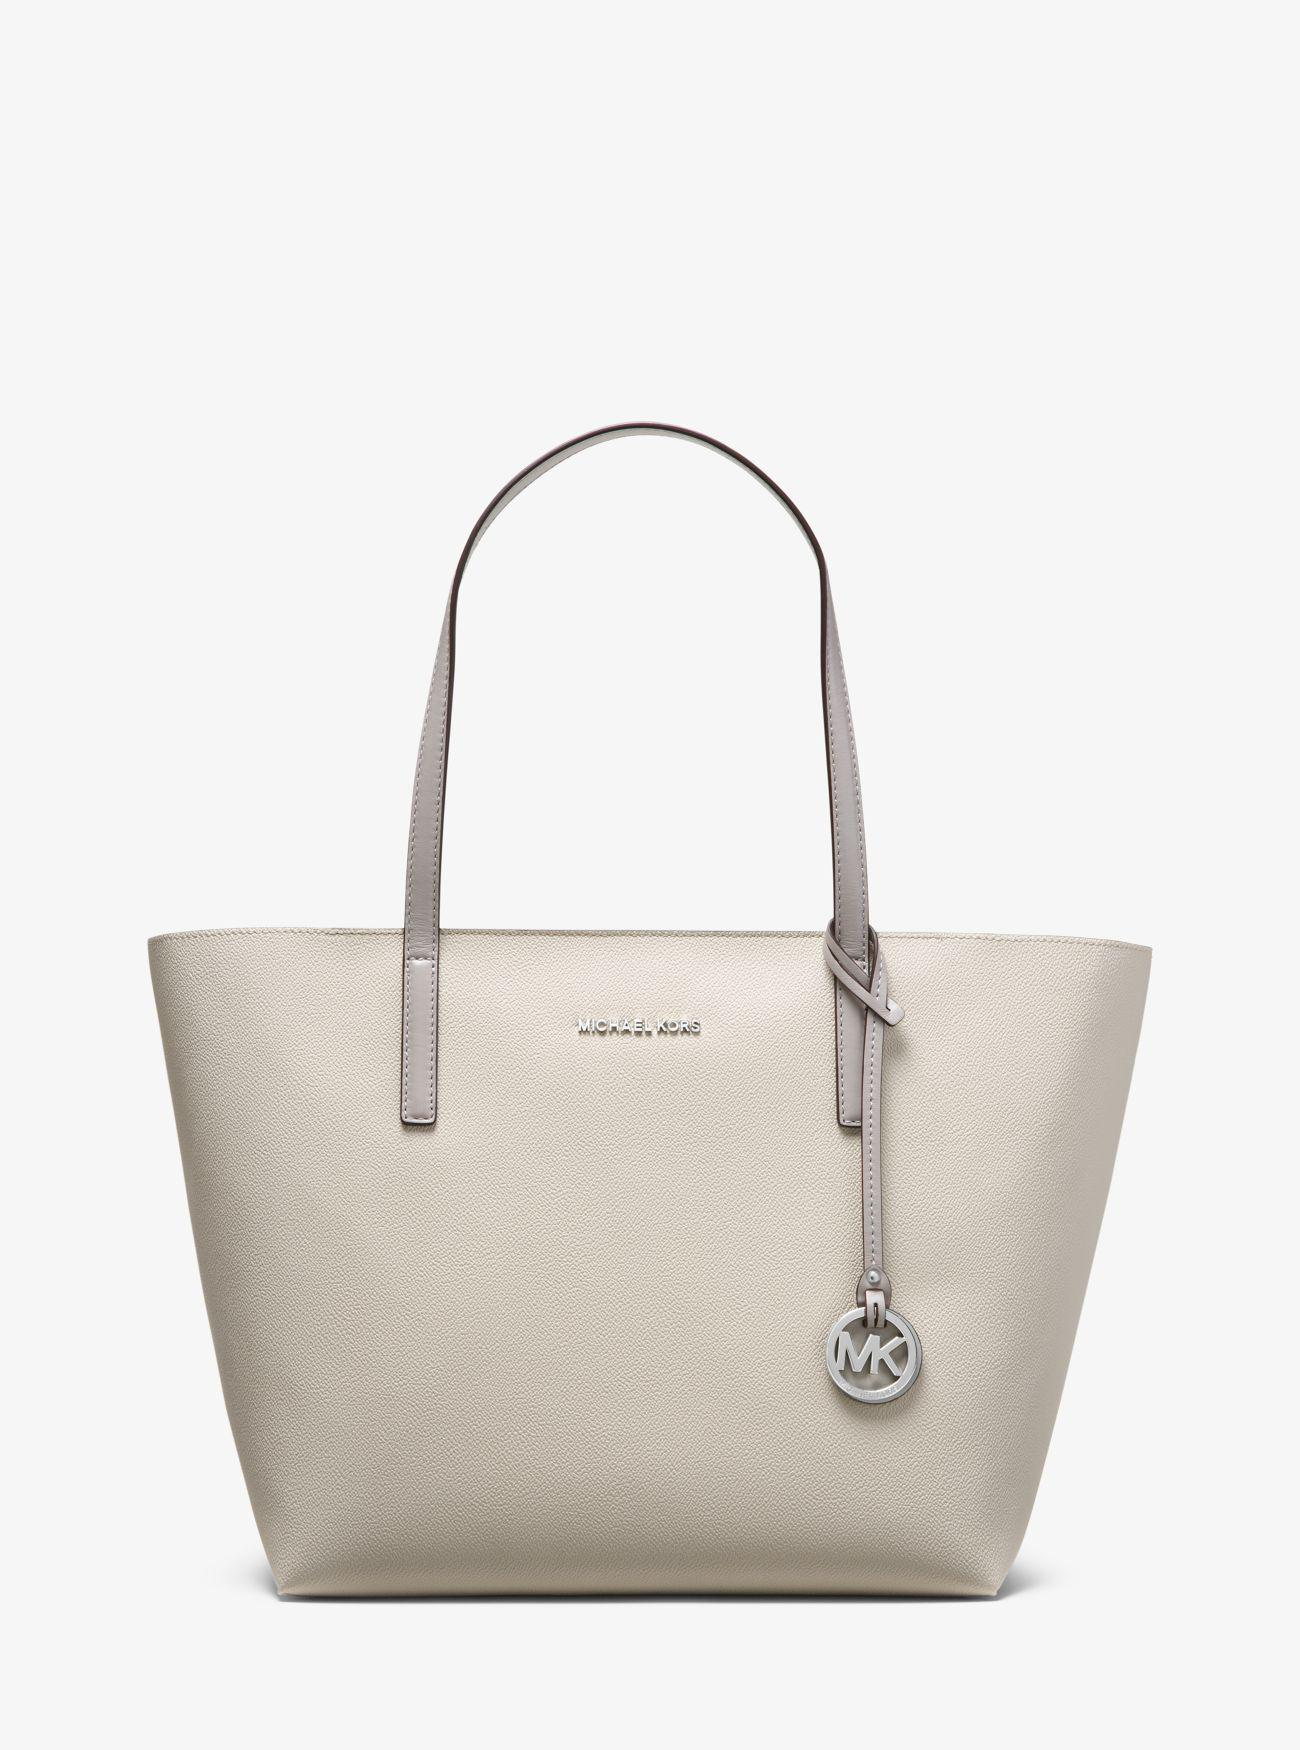 0fb8c990bf79 Michael Kors Hayley Coated Canvas Tote in Gray - Lyst